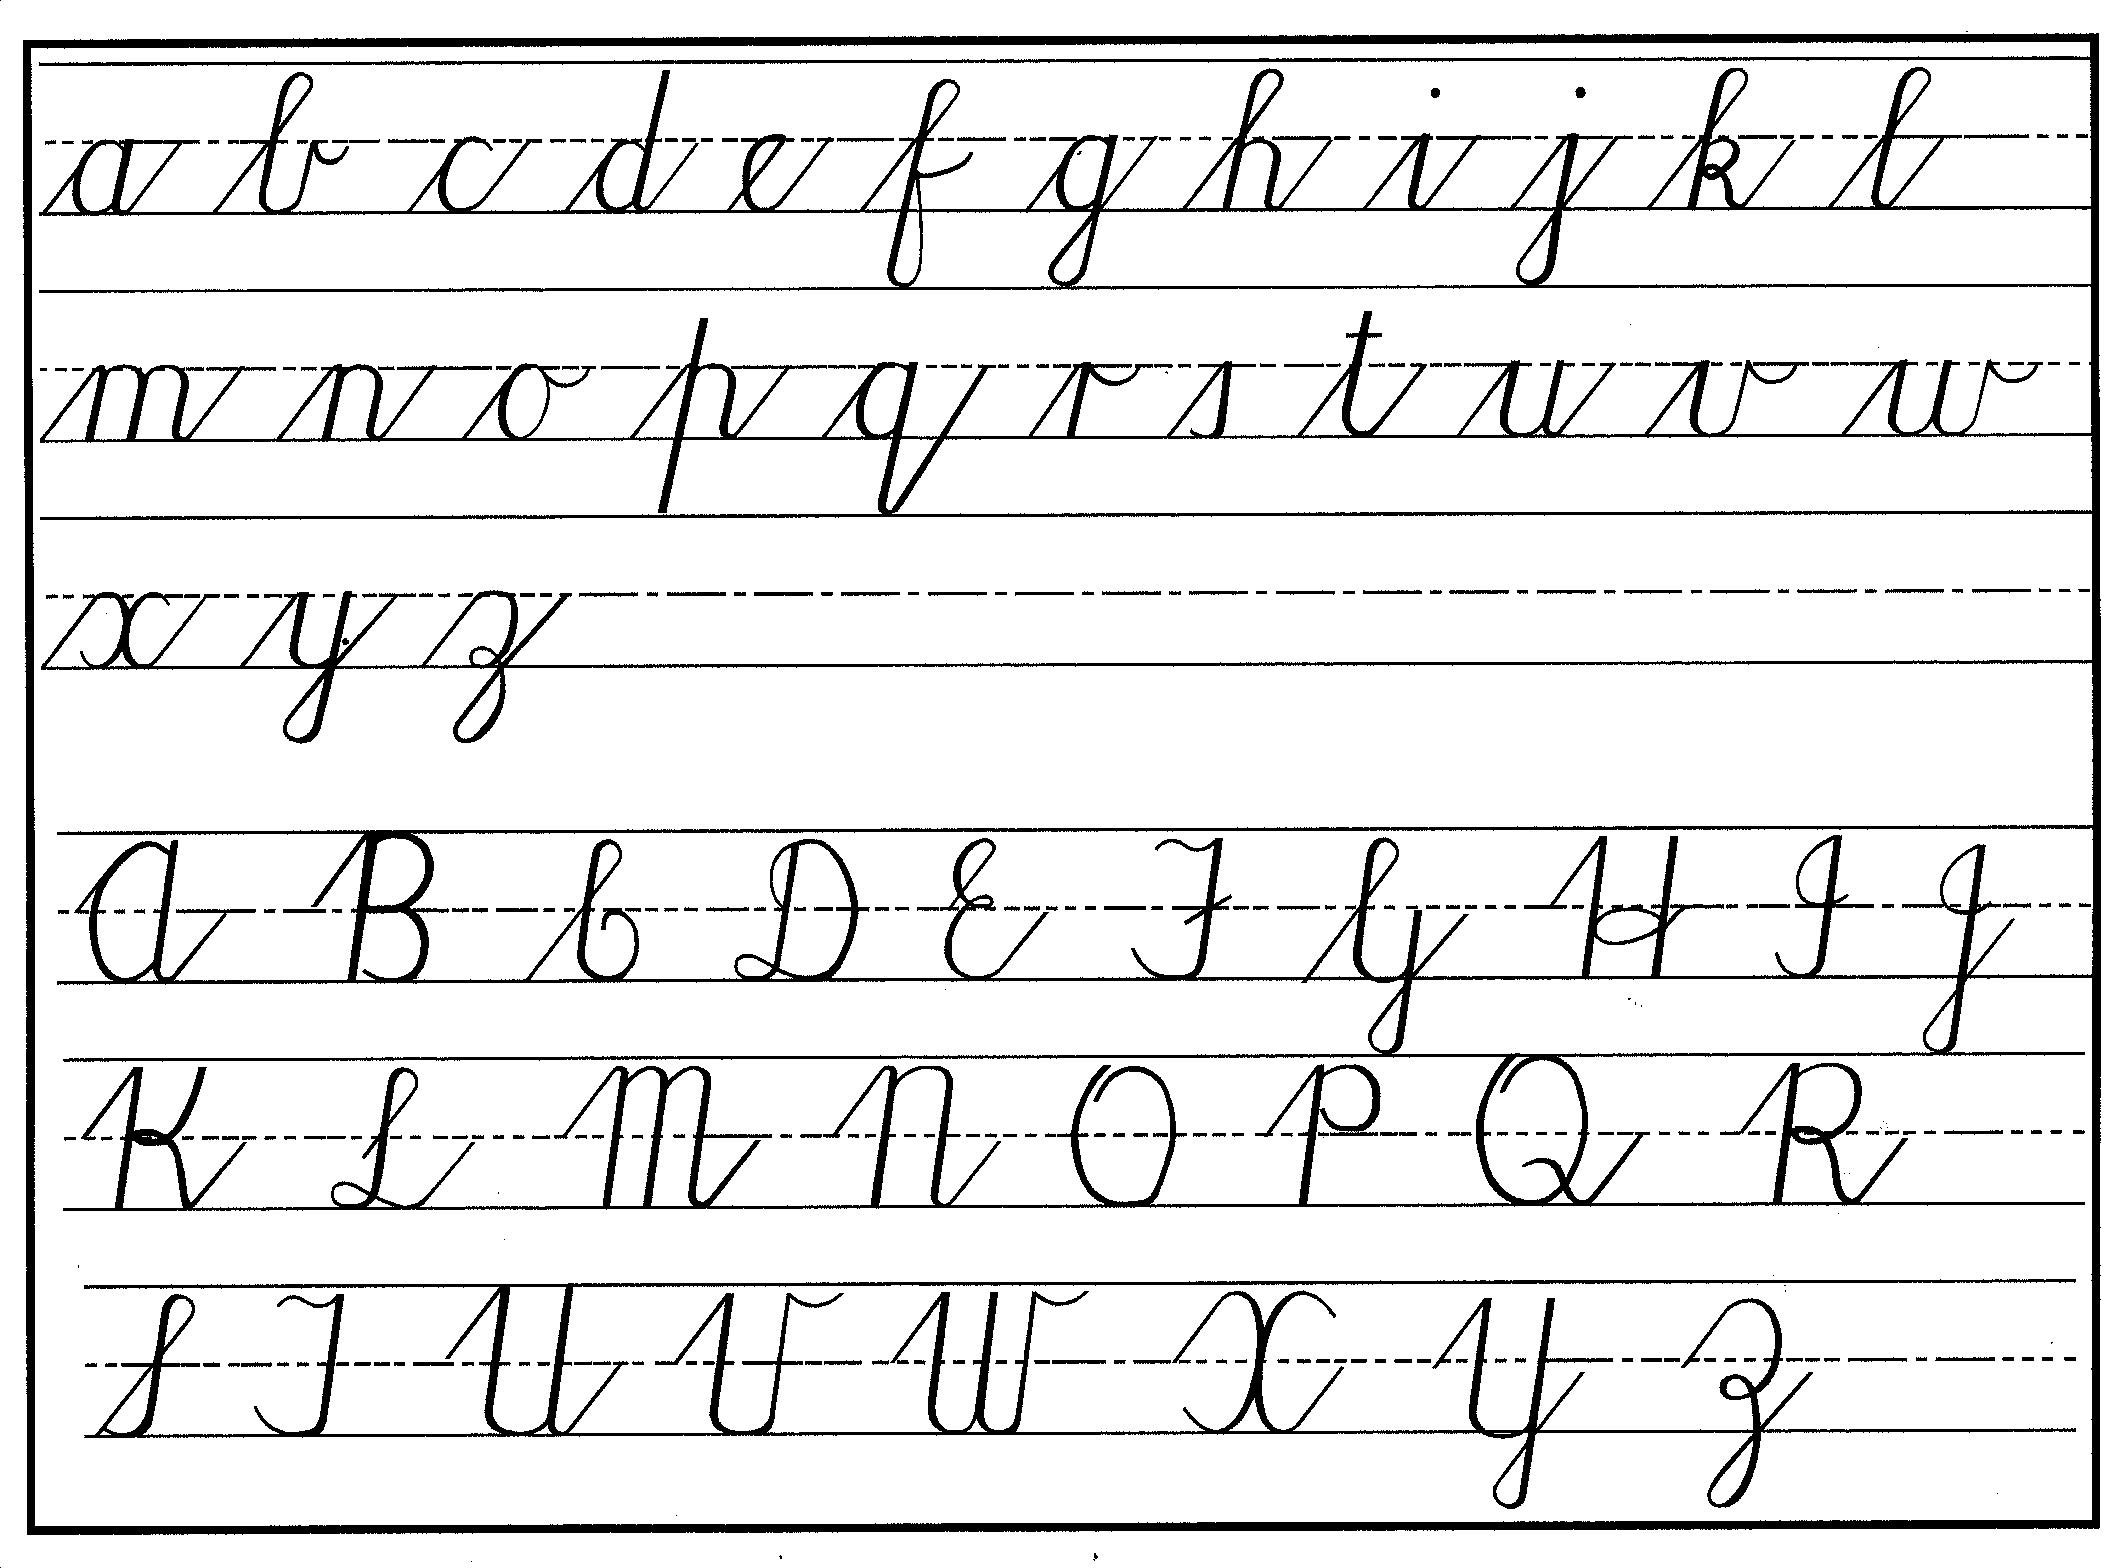 Worksheet Cursive Templates free printable cursive handwriting worksheets templates and worksheets